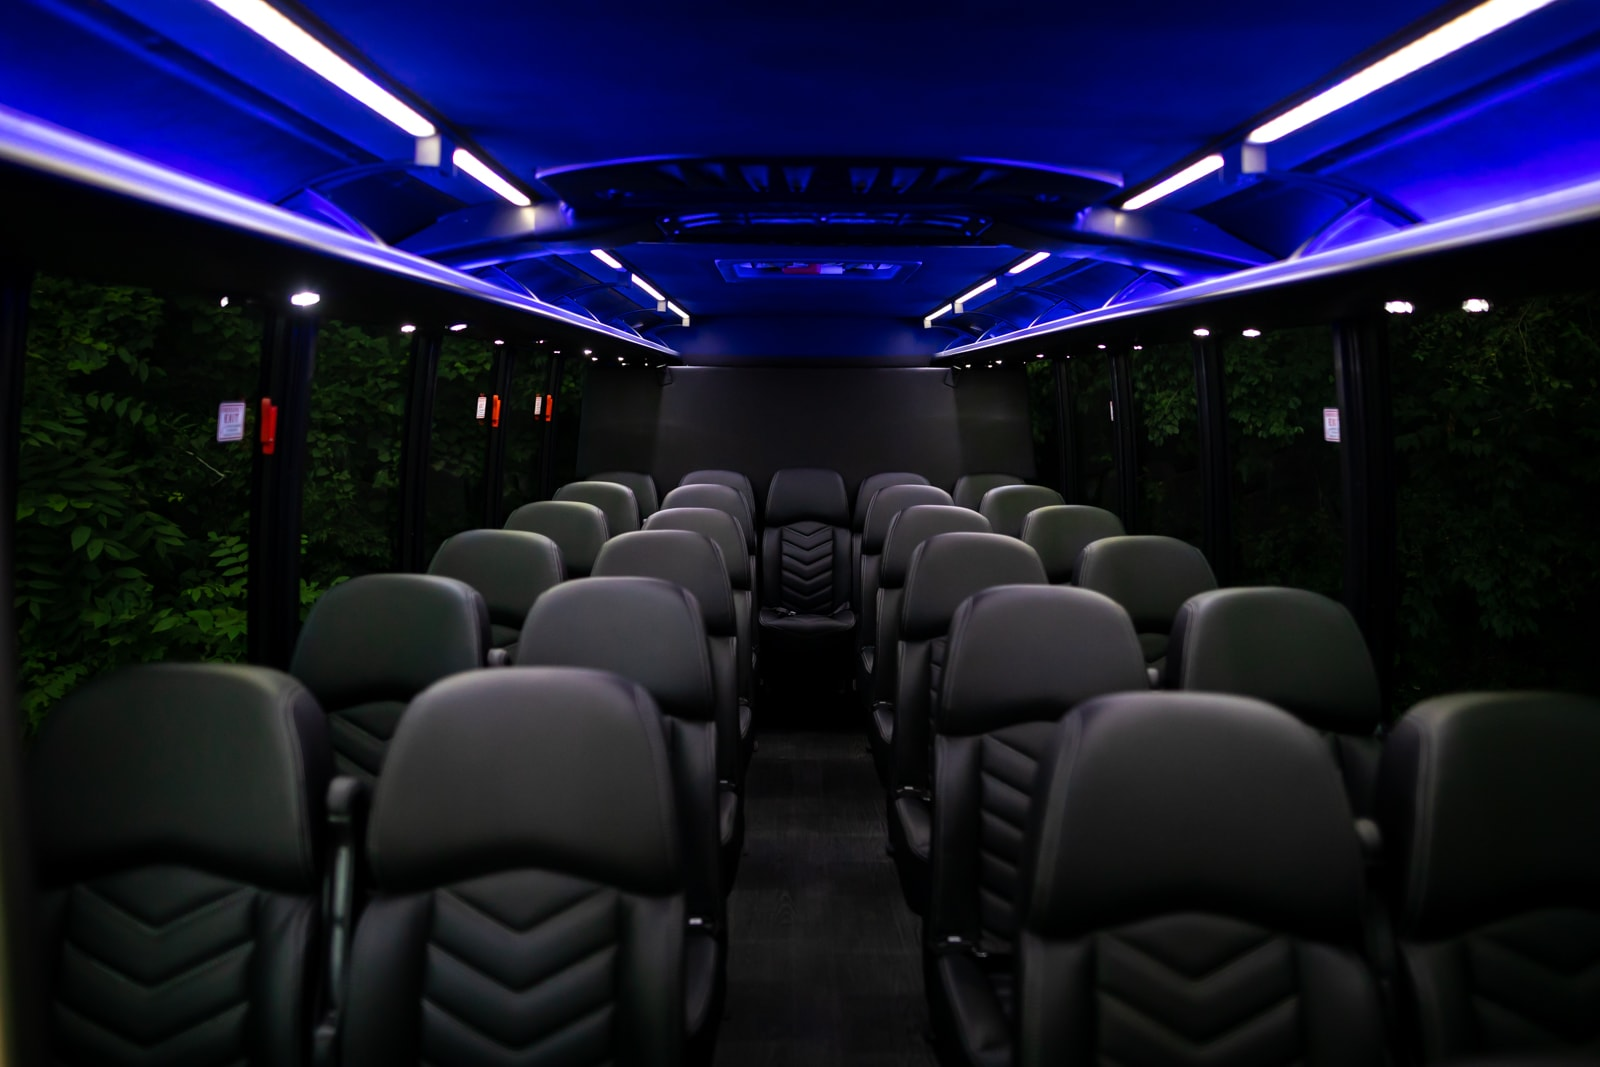 Coach interior displaying the leg room and luxury of this kc limo rental.